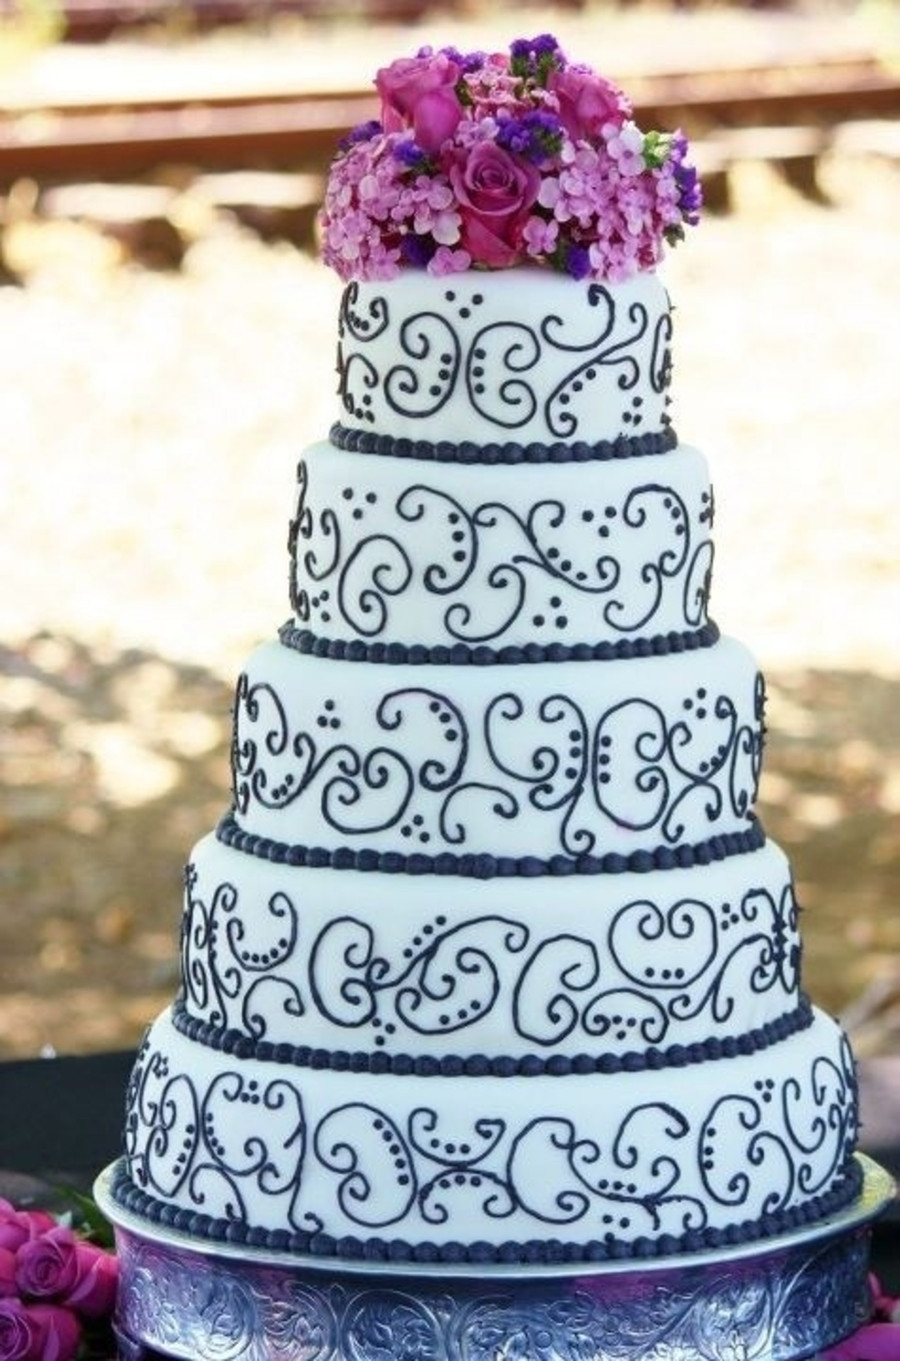 Wedding Cakes Purple And White  Black And White W Purple Wedding Cake CakeCentral